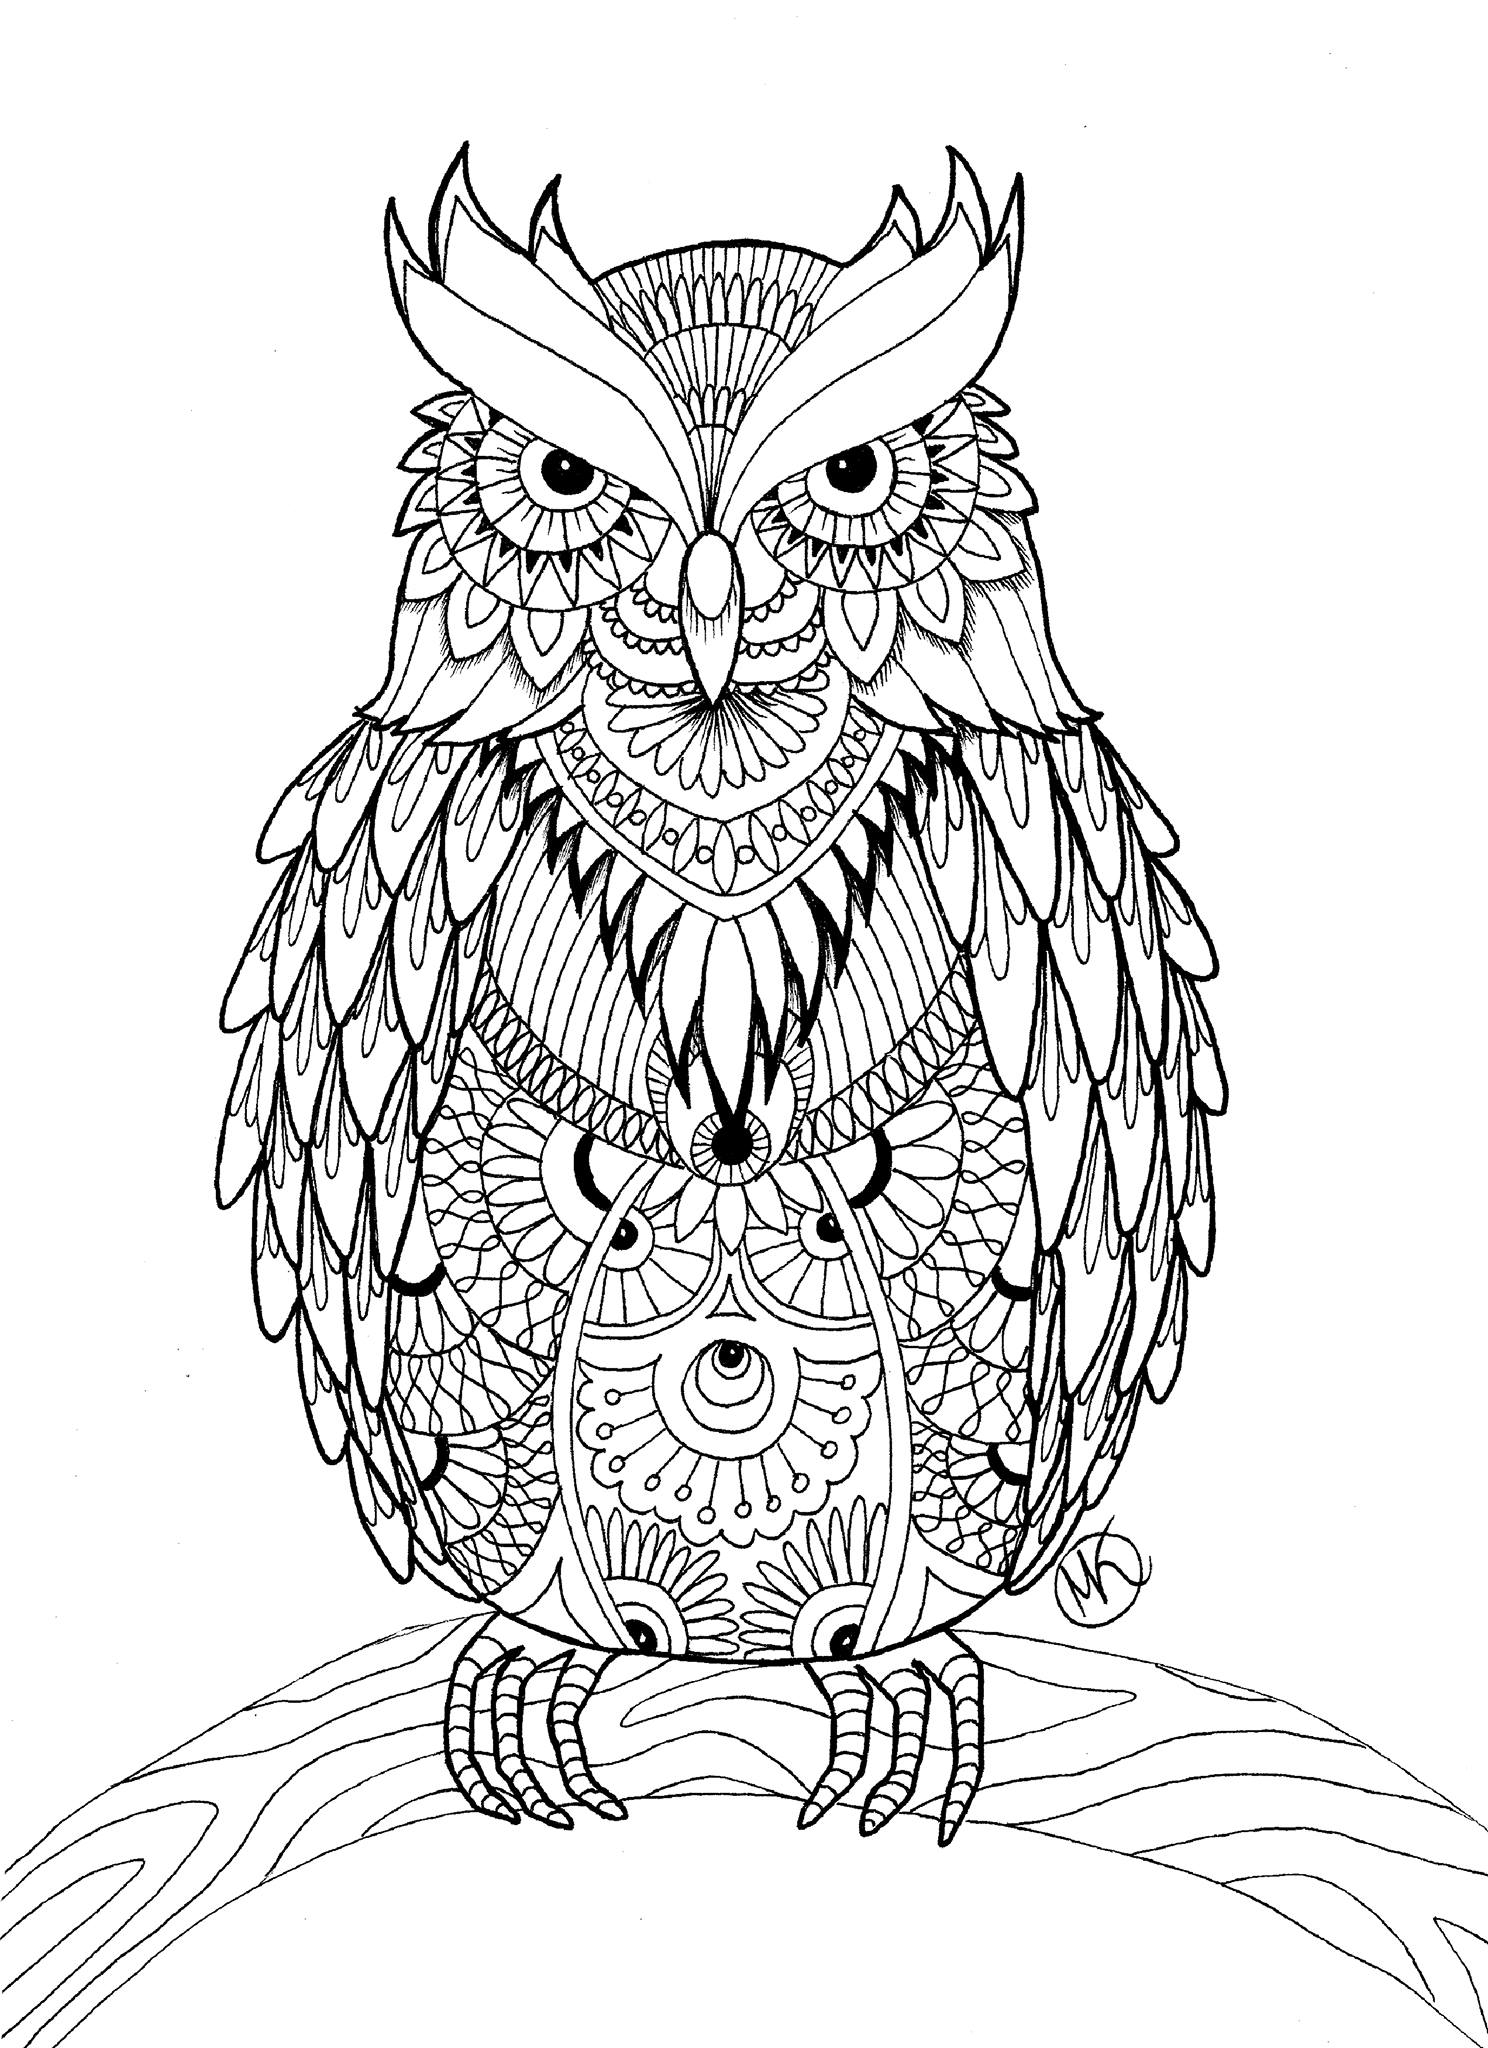 printable pictures of owls cute owl coloring page free printable coloring pages of owls printable pictures